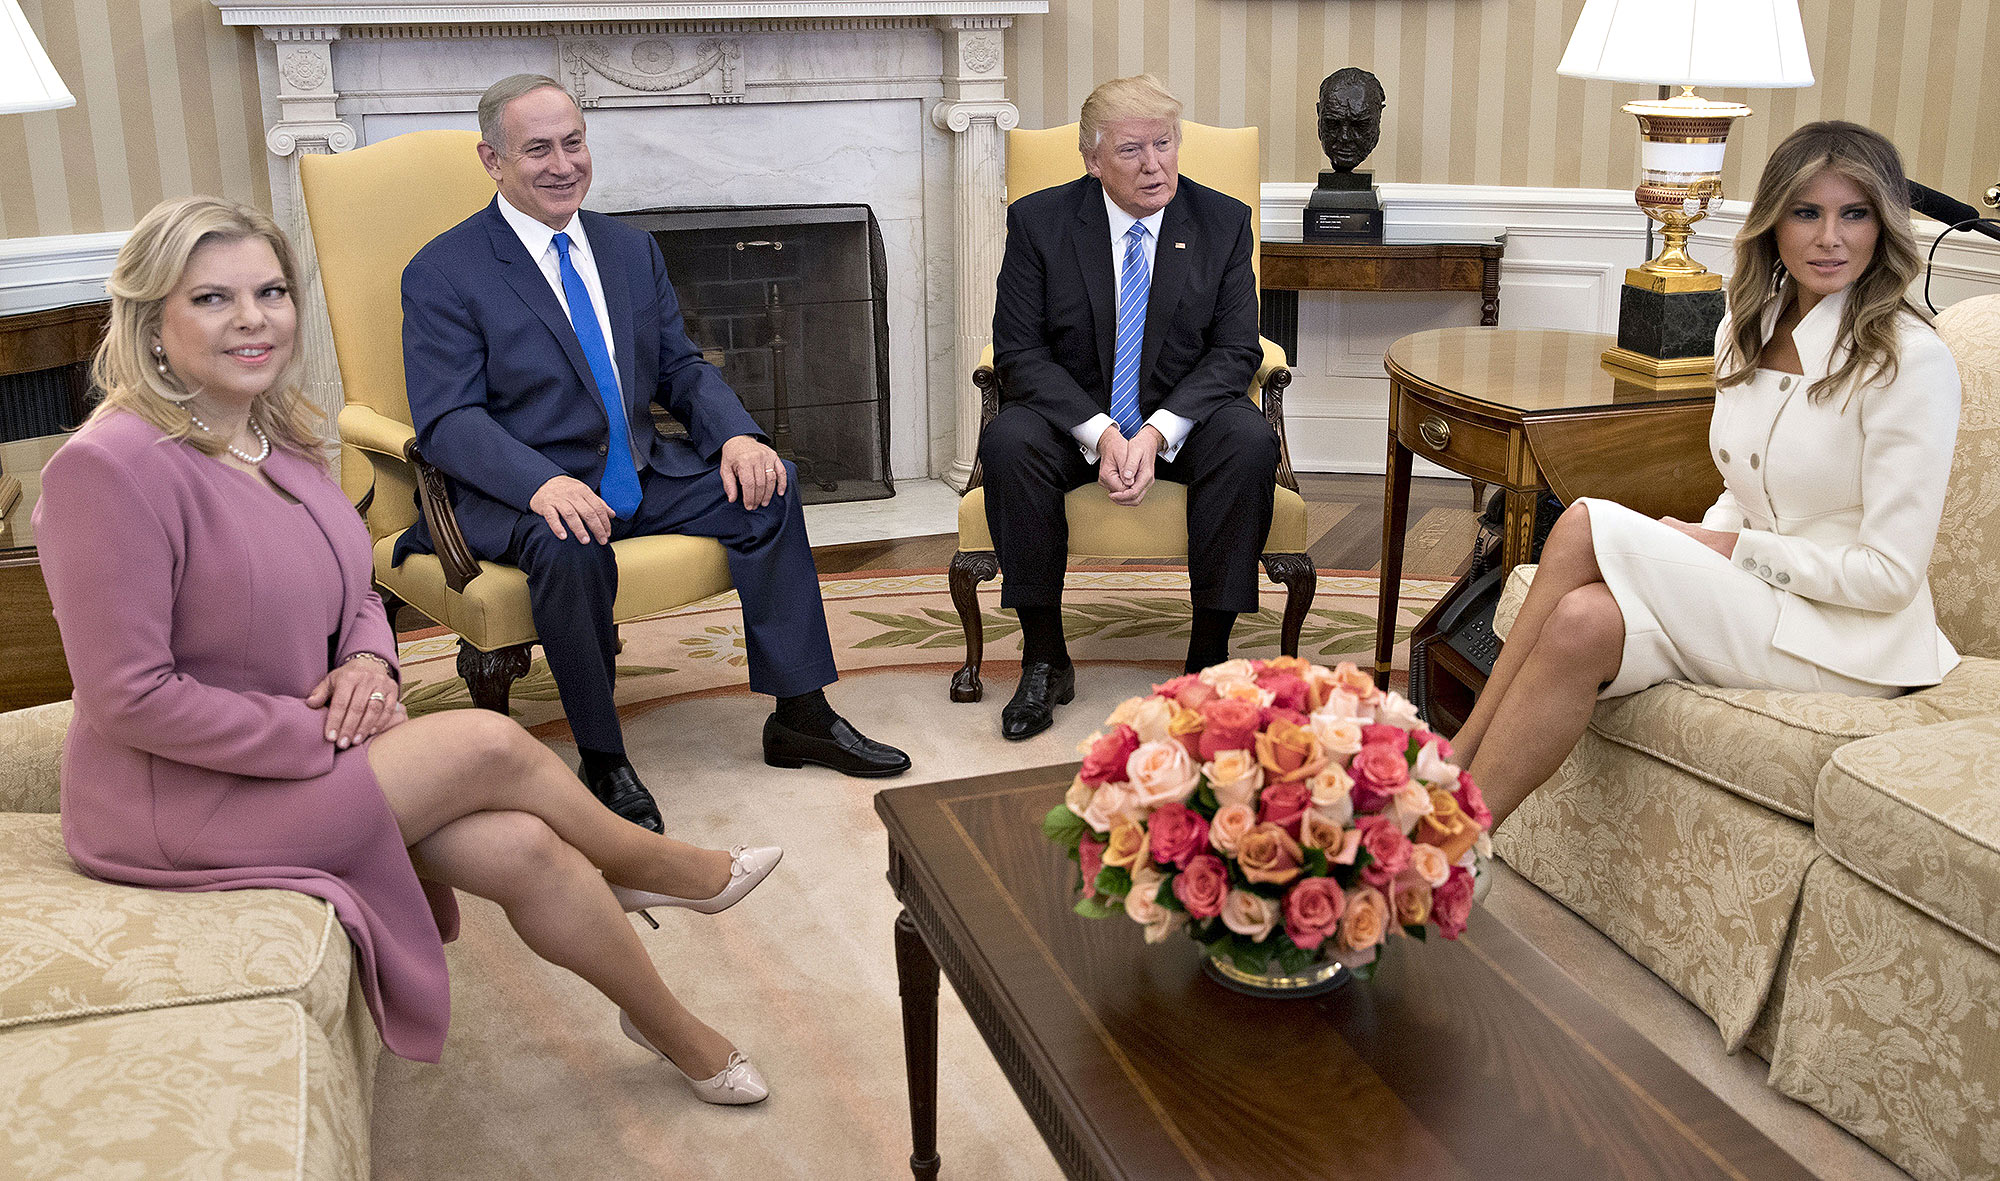 WASHINGTON, D.C. - FEBRUARY 15: (AFP OUT) U.S. President Donald Trump, Israel Prime Minister Benjamin Netanyahu, his wife Sara Netanyahu (L) and U.S. first lady Melania Trump sit in the Oval Office of the White House on February 15, 2017 in Washington, D.C. Netanyahu is trying to recalibrate ties with the new U.S. administration after eight years of high-profile clashes with former President Barack Obama, in part over Israel's policies toward the Palestinians. (Photo by Andrew Harrer-Pool/Getty Images) Getty Images North America 635483868